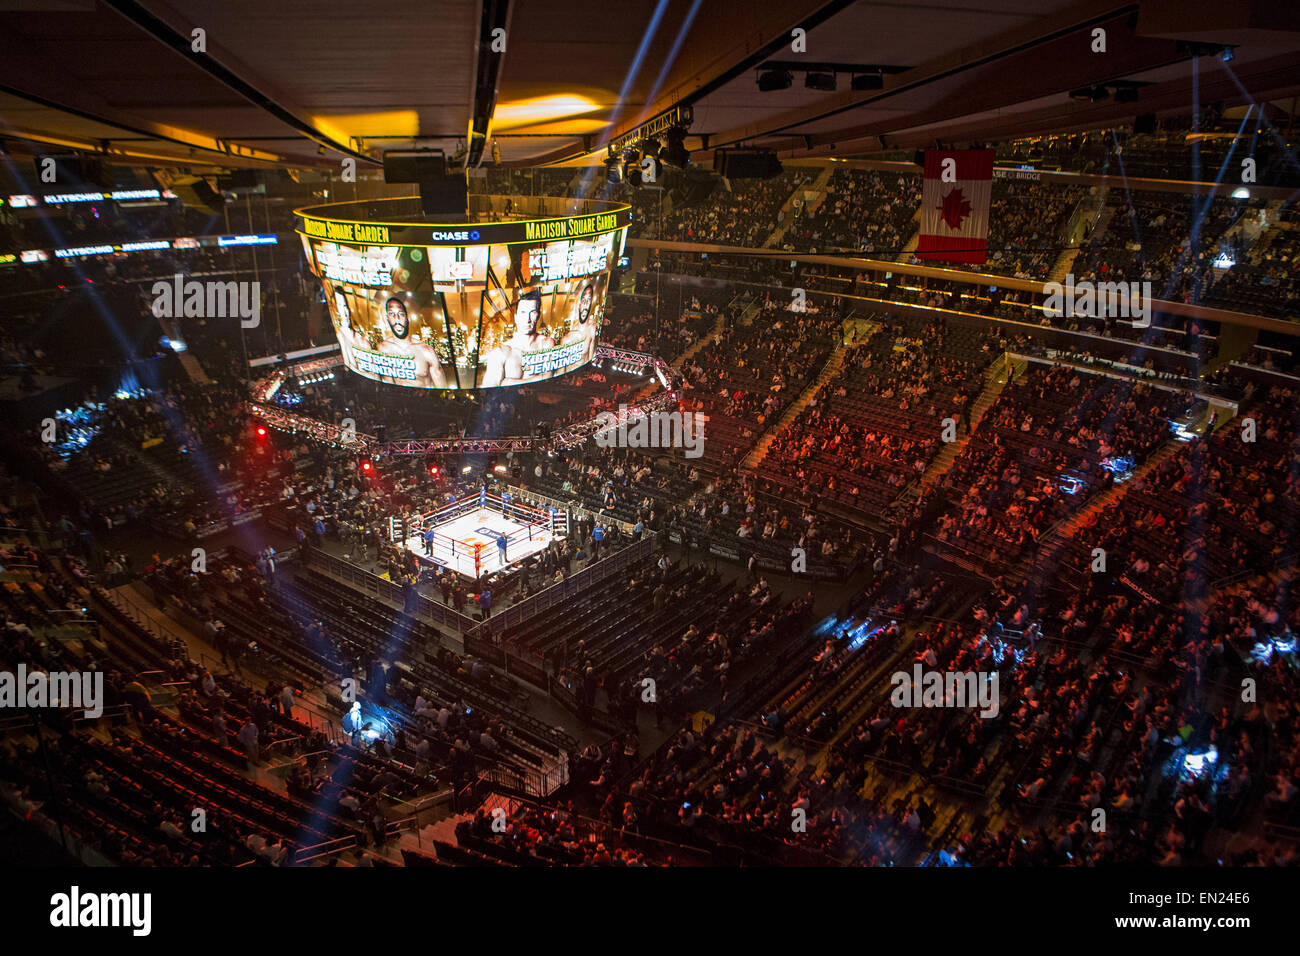 Boxing Match Madison Square Garden Stock Photos & Boxing Match ...